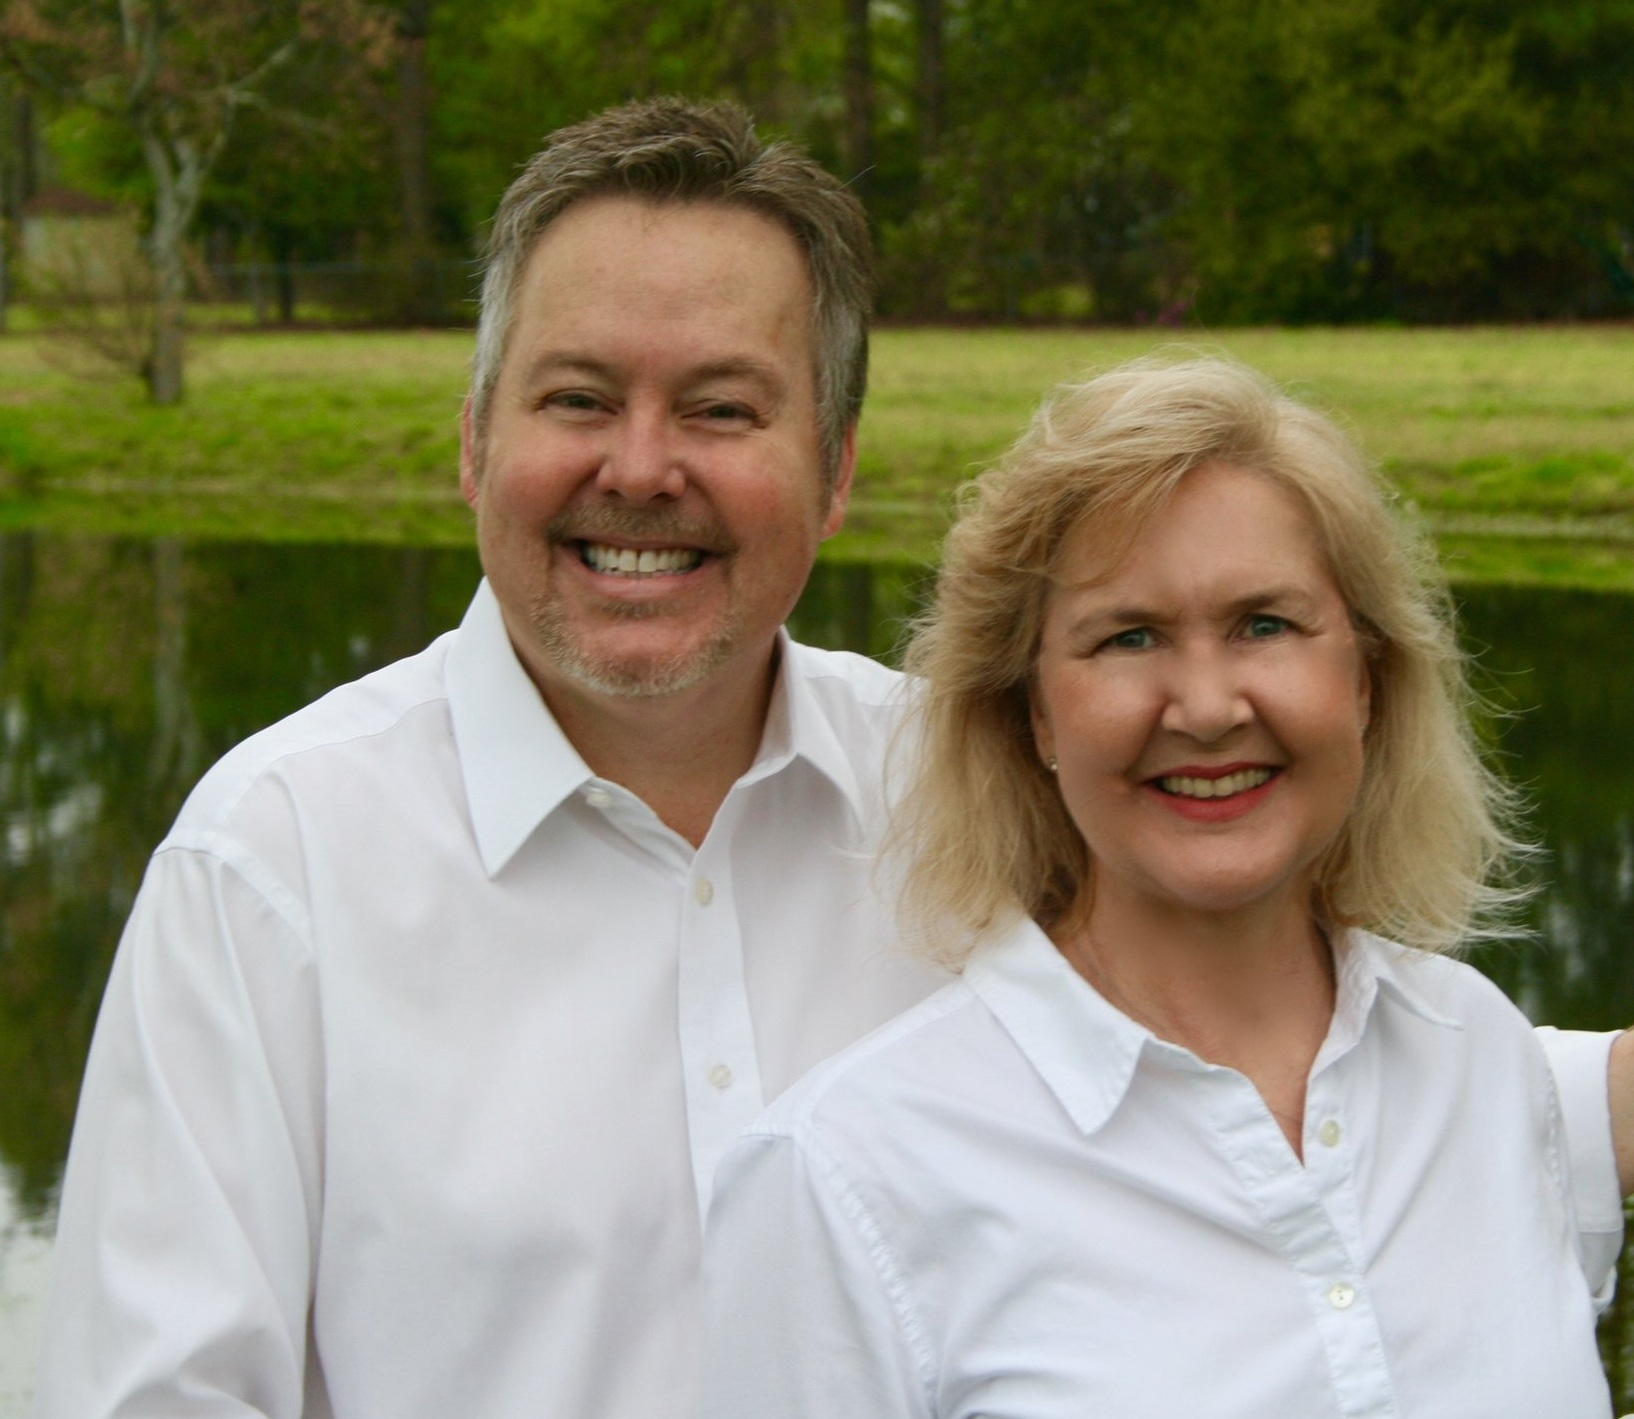 Pastor Stephen and Jeanne White